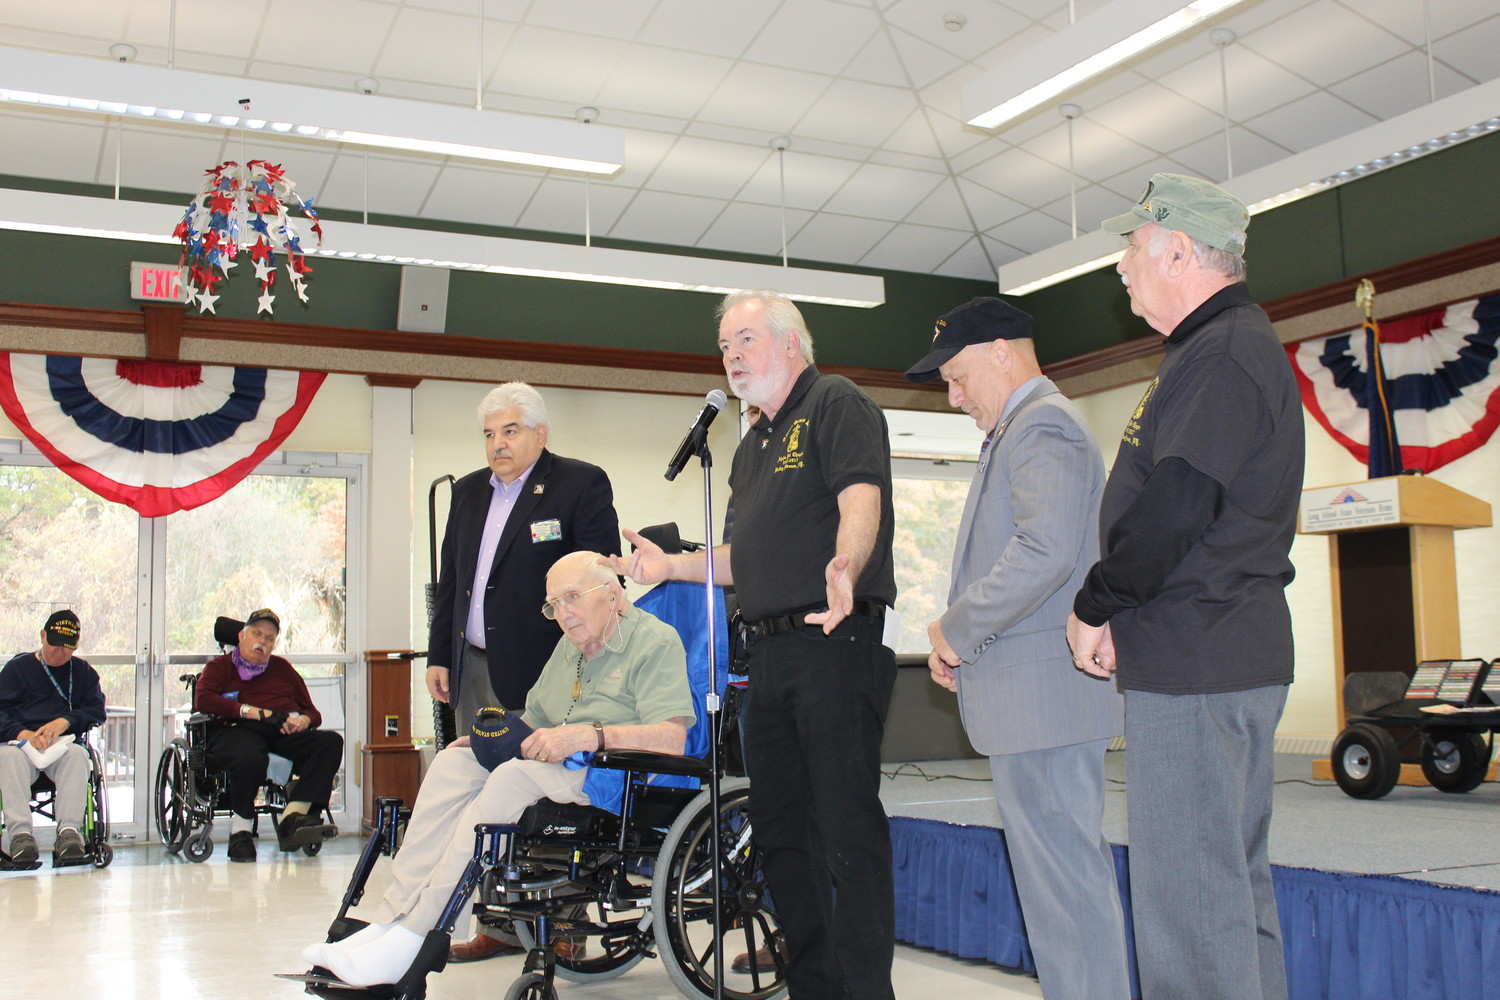 Jerry Lange, center, told veterans at the Veterans Home in Stony Brook about the fraternity and thanked them for their service on Nov. 18.